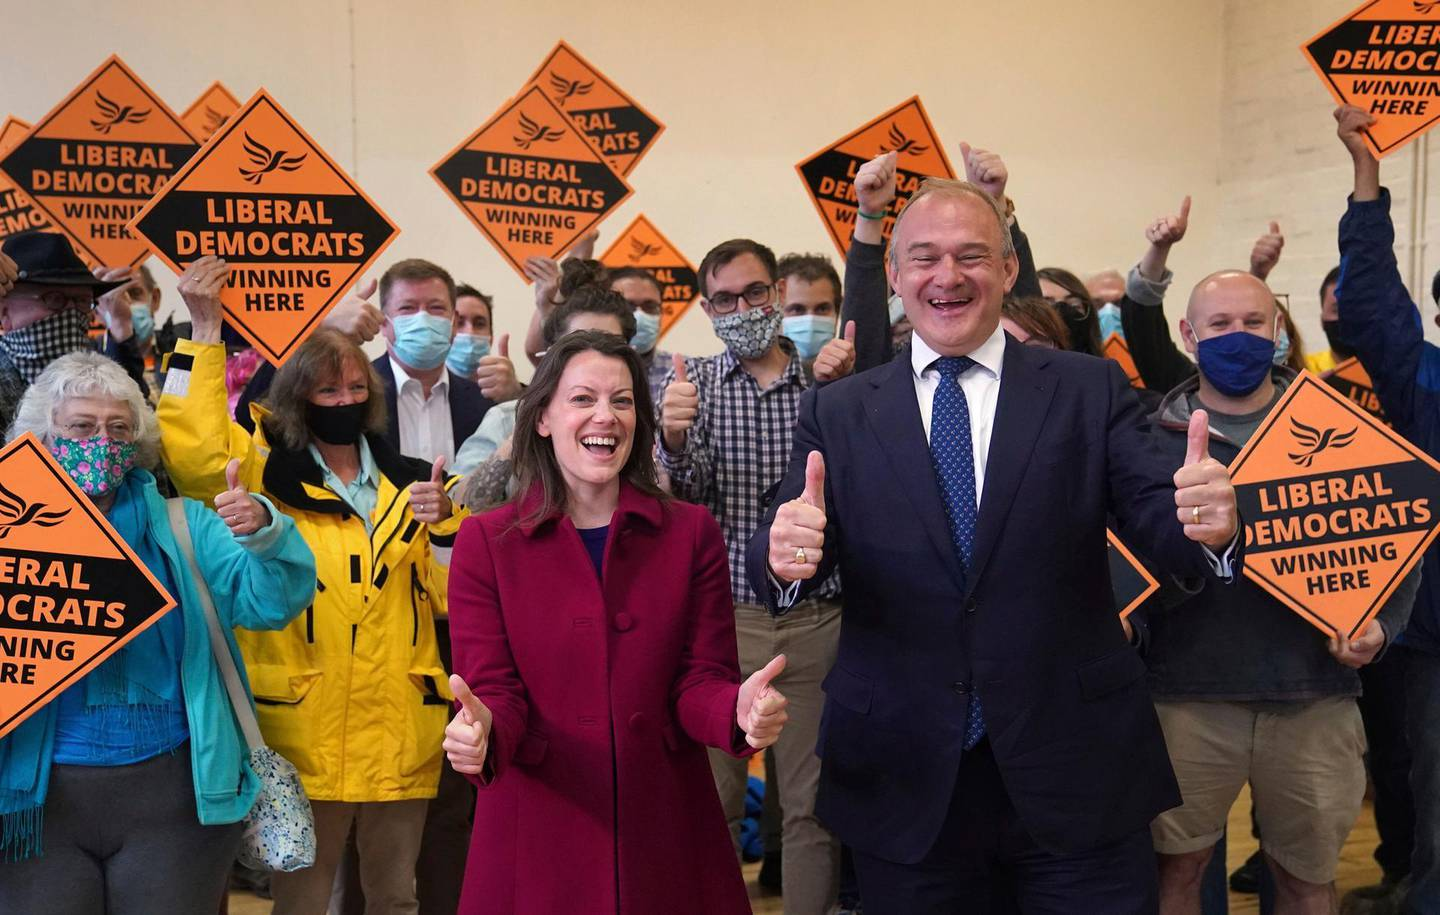 Liberal Democrat leader Ed Davey and new Liberal Democrat MP for Chesham and Amersham Sarah Green during a victory rally at Chesham Youth Centre in Chesham, England, Friday June 18, 2021, after Sarah Green won the Chesham and Amersham by-election. In a surprising result, Prime Minister Boris Johnson's Conservative Party was easily defeated in a special election for a seat it has held onto for decades. (Steve Parsons/PA via AP)